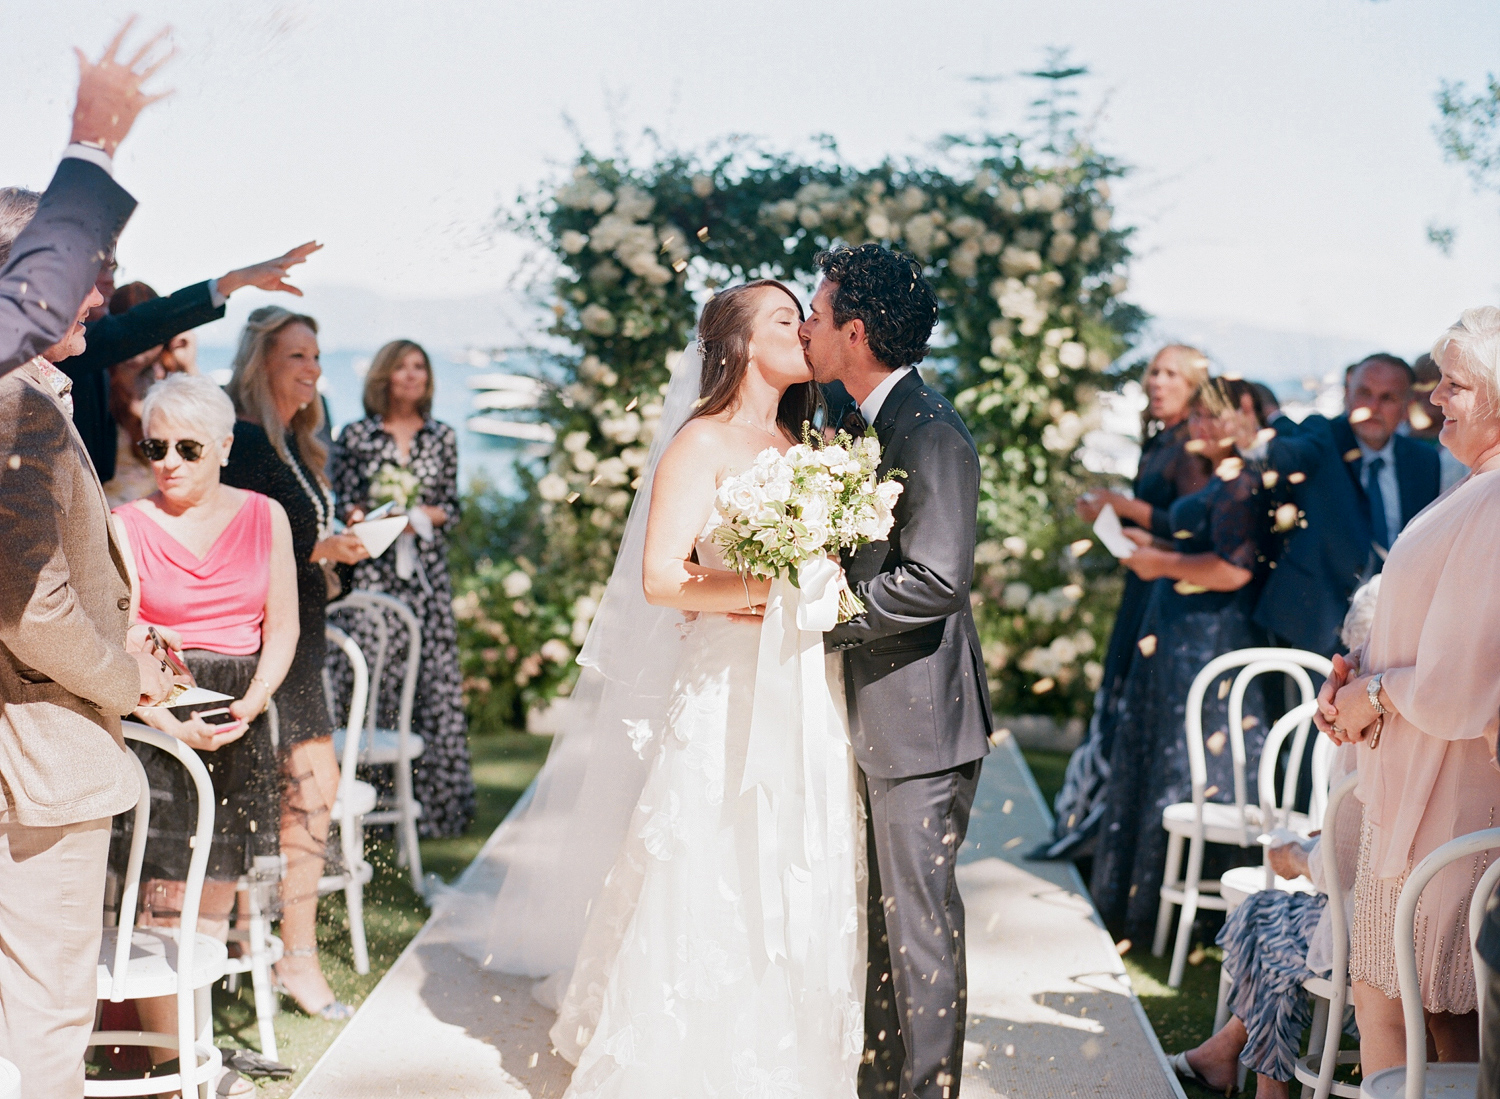 Natalie and Grant wedding recessional bride and groom kissing